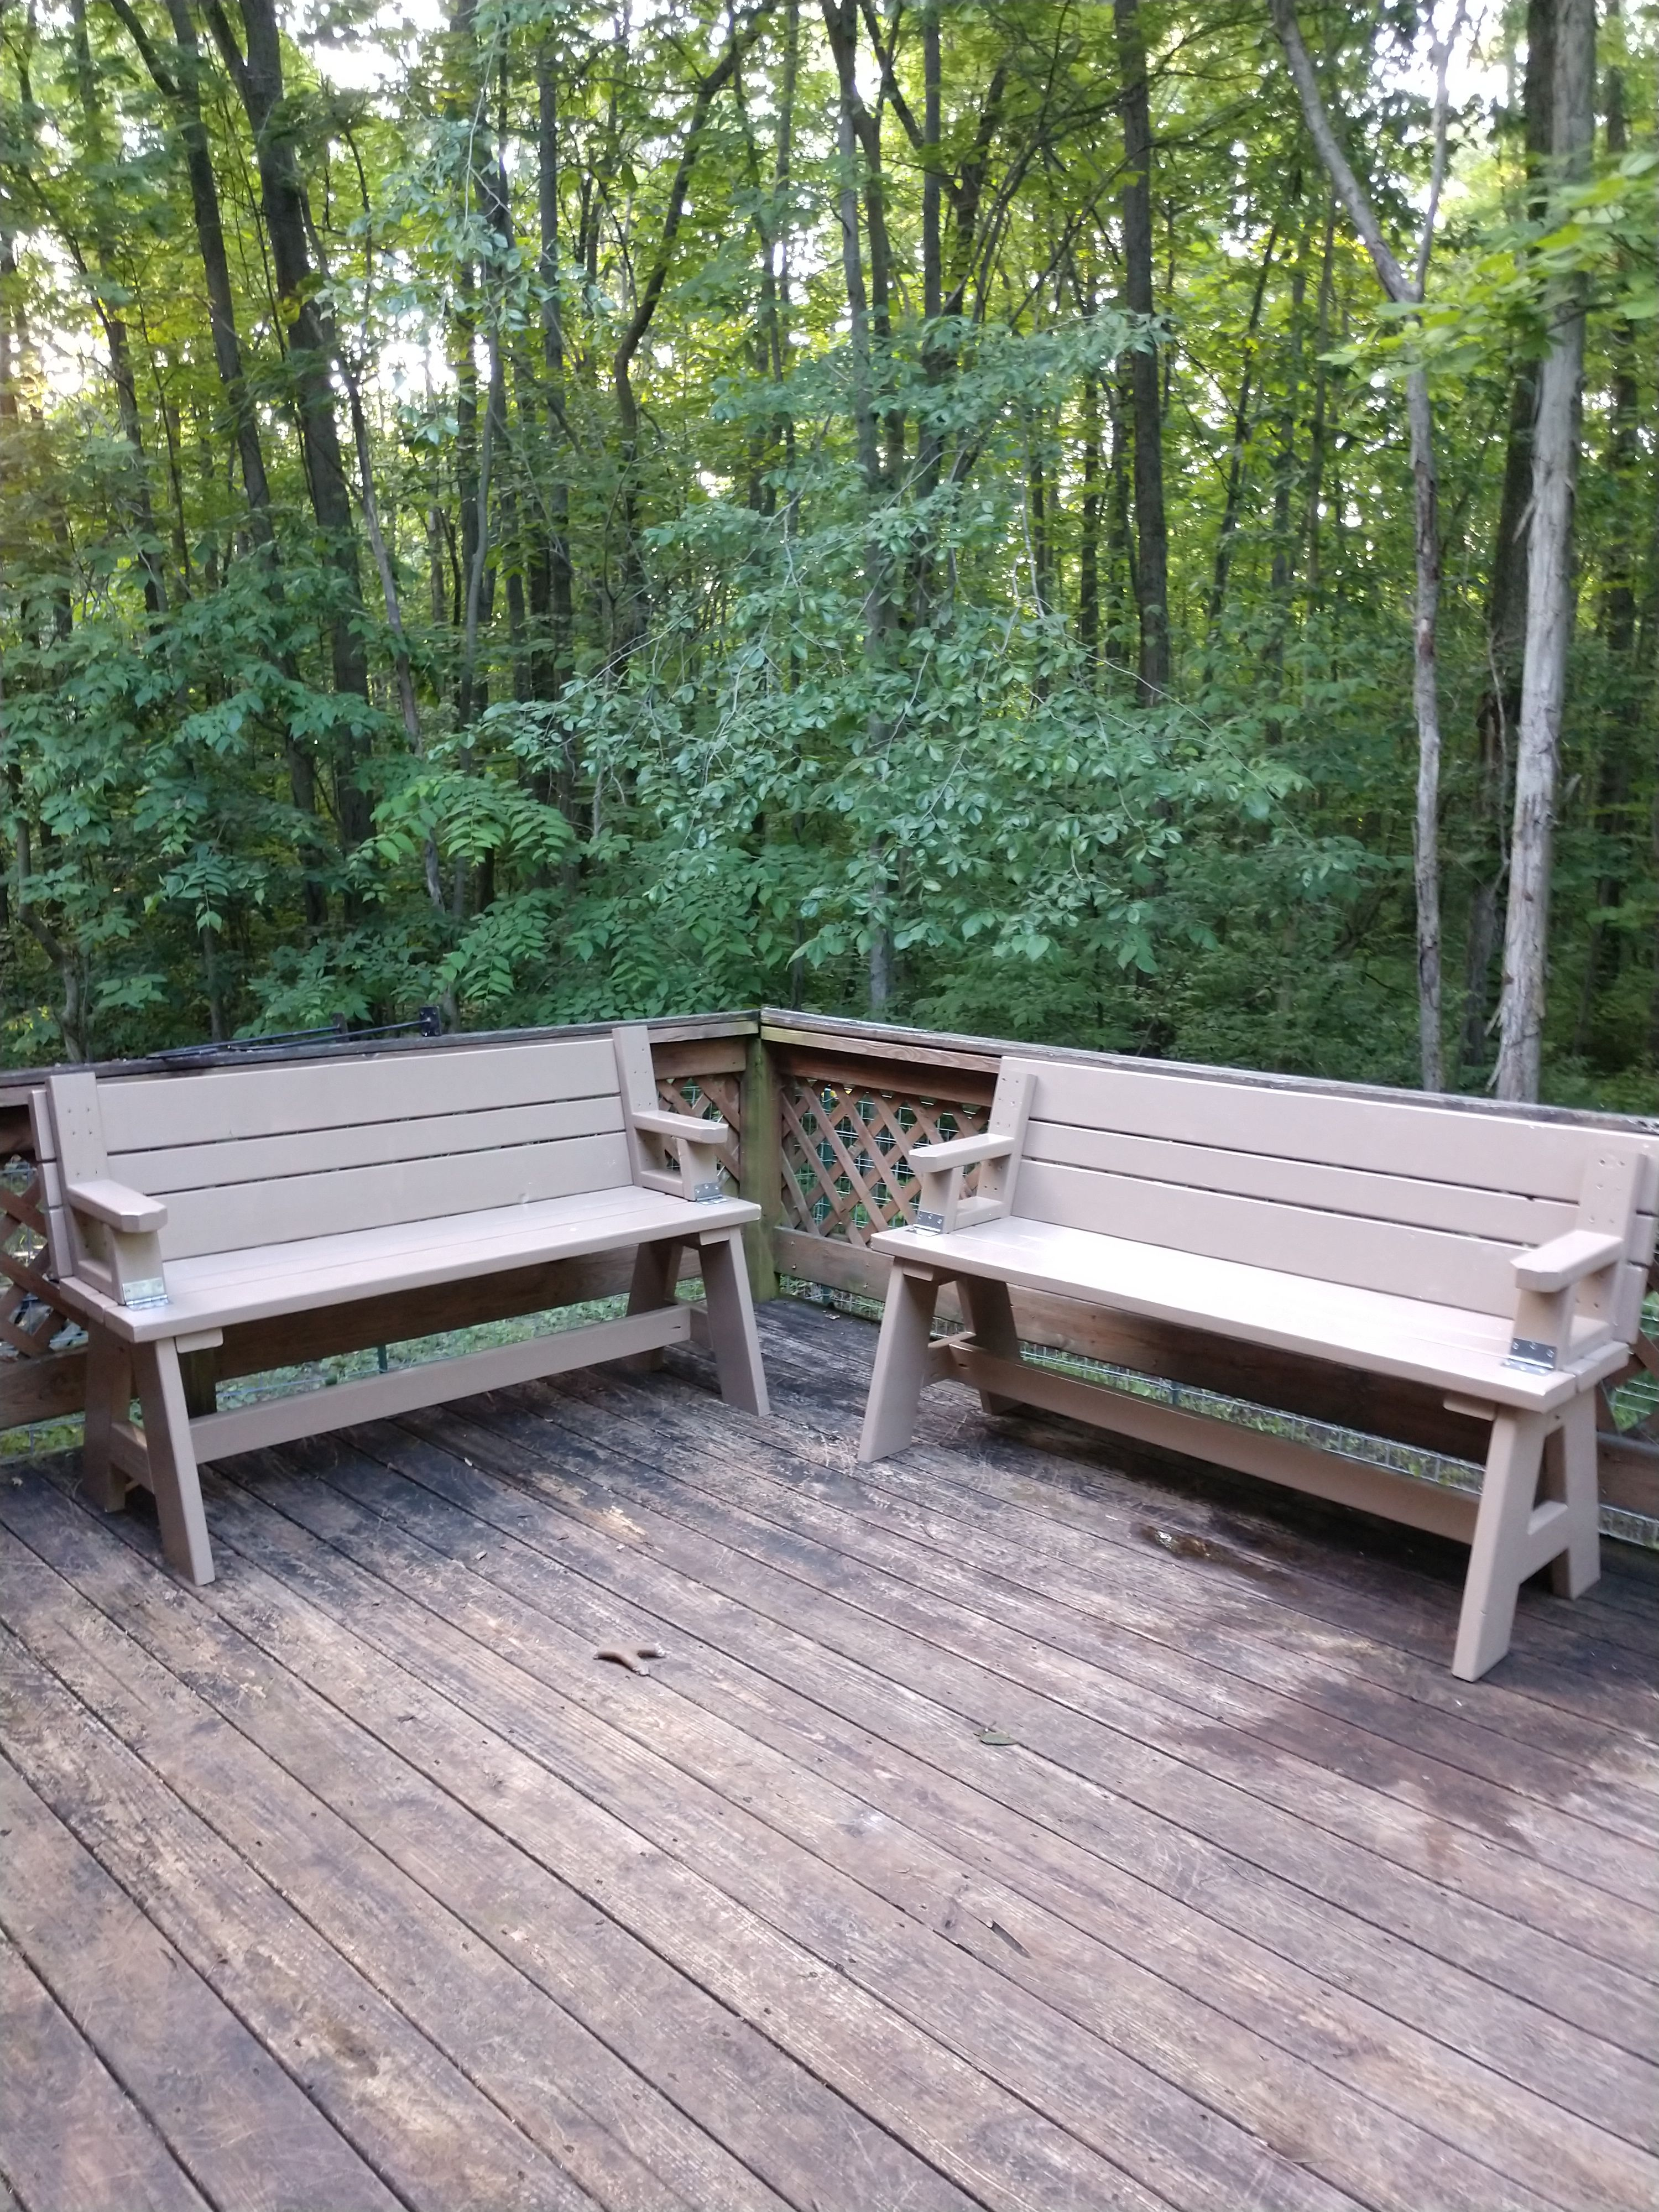 Groovy Built A Picnic Table That Converts Into Two Benches From Machost Co Dining Chair Design Ideas Machostcouk